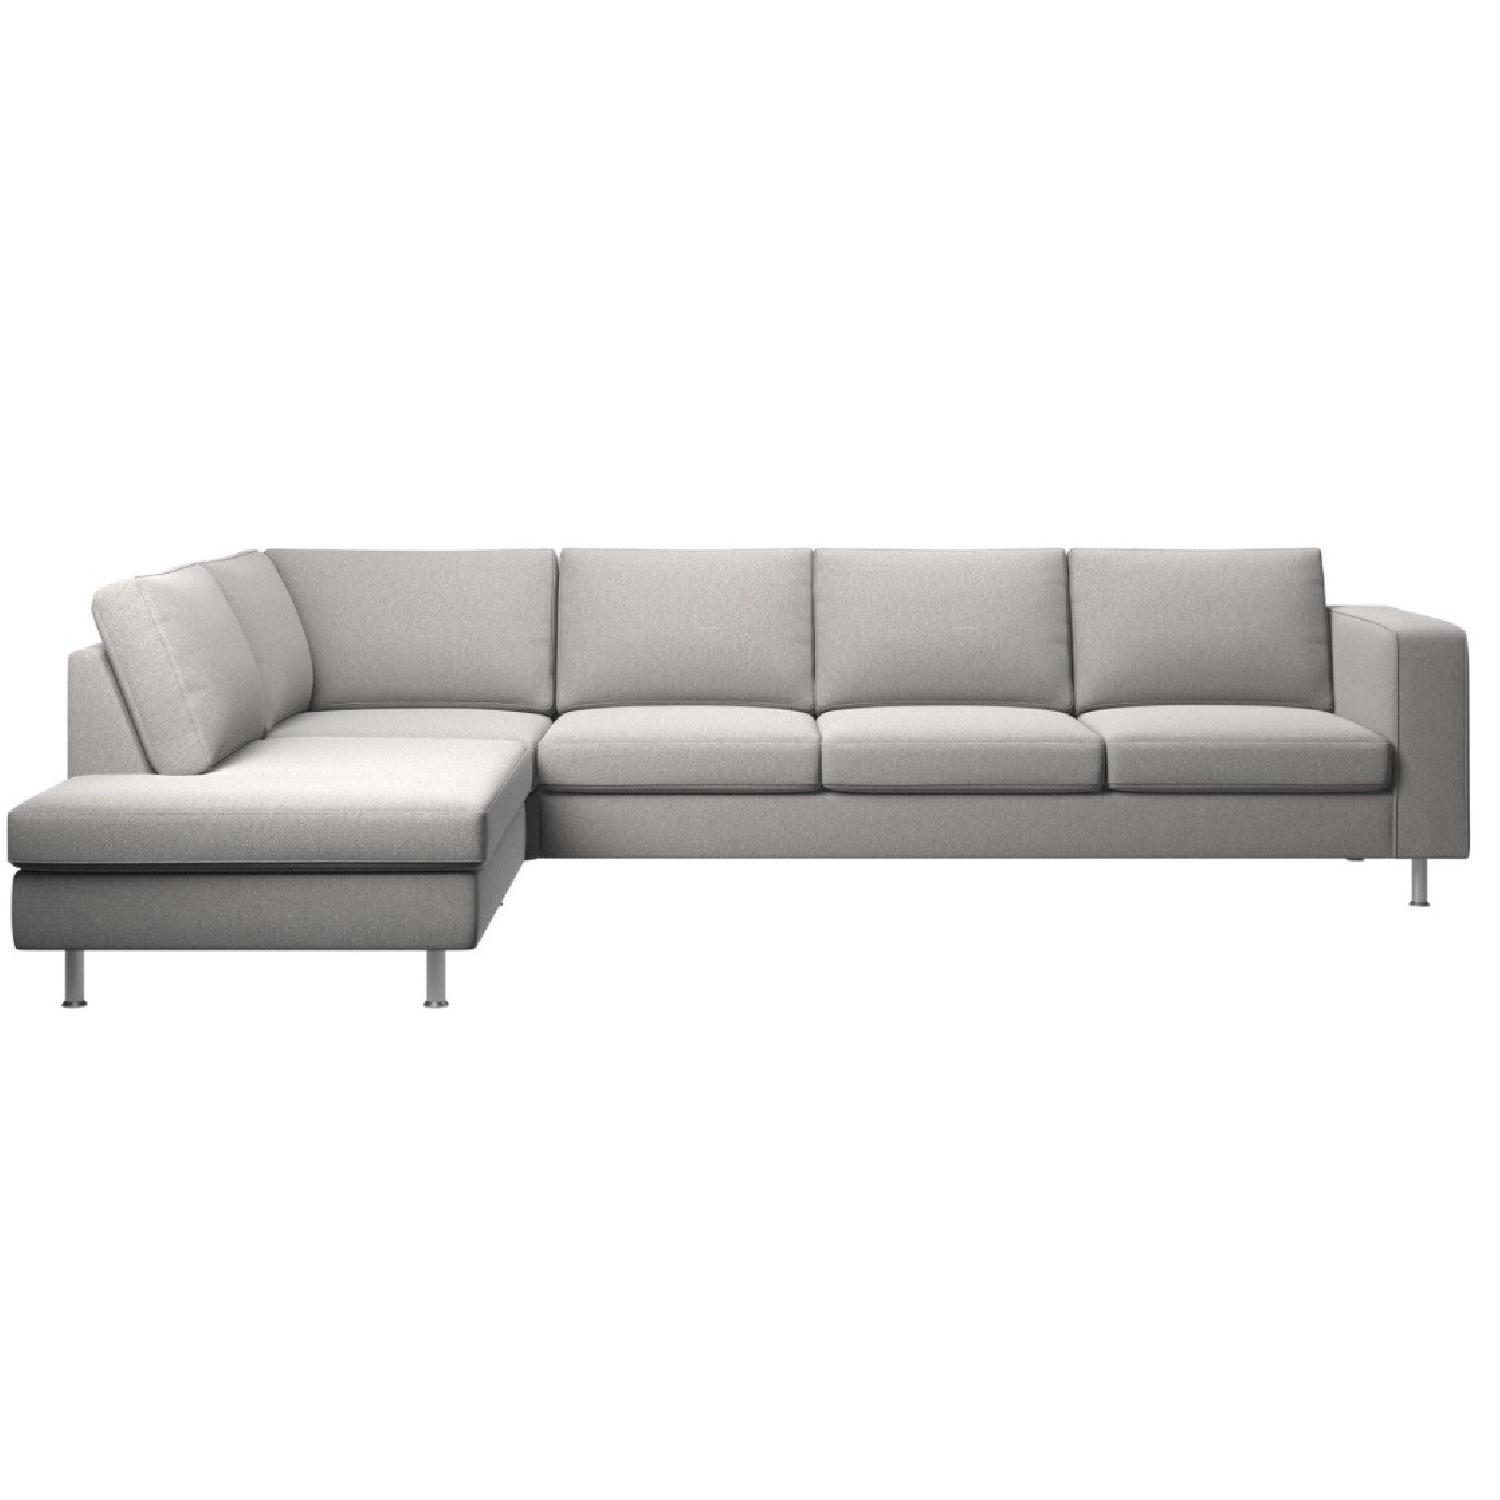 Sectional Couch Light Gray: BoConcept Light Gray L-Shaped Sectional Sofa